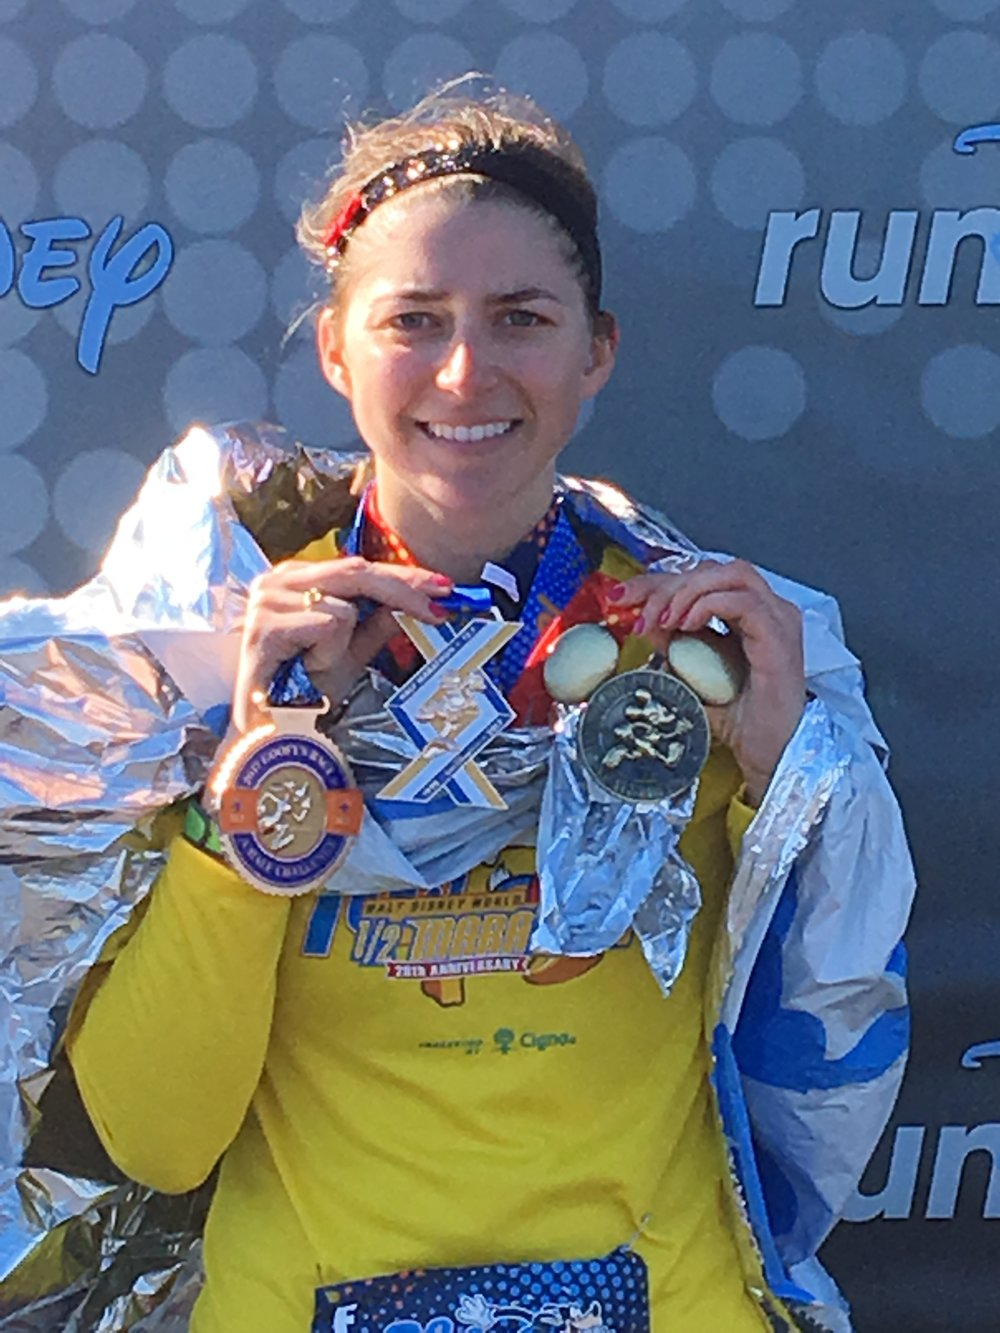 Marathon Recap - This was my second RunDisney race and I had signed-up for the Goofy Challenge thinking that I would be considered a 'real runner' if I could do both a half-marathon AND a full! RunDisney races will always hold a special place in my heart and I am a forever Disney fan- it always makes me feel like a kid whenever I arrive at Magic Kingdom and this race was way more than I could have expected!The race started out SO cold (and of-course I didn't bring any warm-weather gear from Colorado with me), luckily I had a throw-away sweatshirt, mittens, and hat that I purchased from Target. It was also slightly windy, which made me (a person who normally runs cold anyways) even more chilled. It started in Epcot, then we weaved out and made our way to Magic Kingdom, which was way more magical than an expectation I had! Seeing the castle sparkle in the still dark sky was amazing and I began to warm-up, so I dropped off my sweatshirt and hat off to the sidelines.